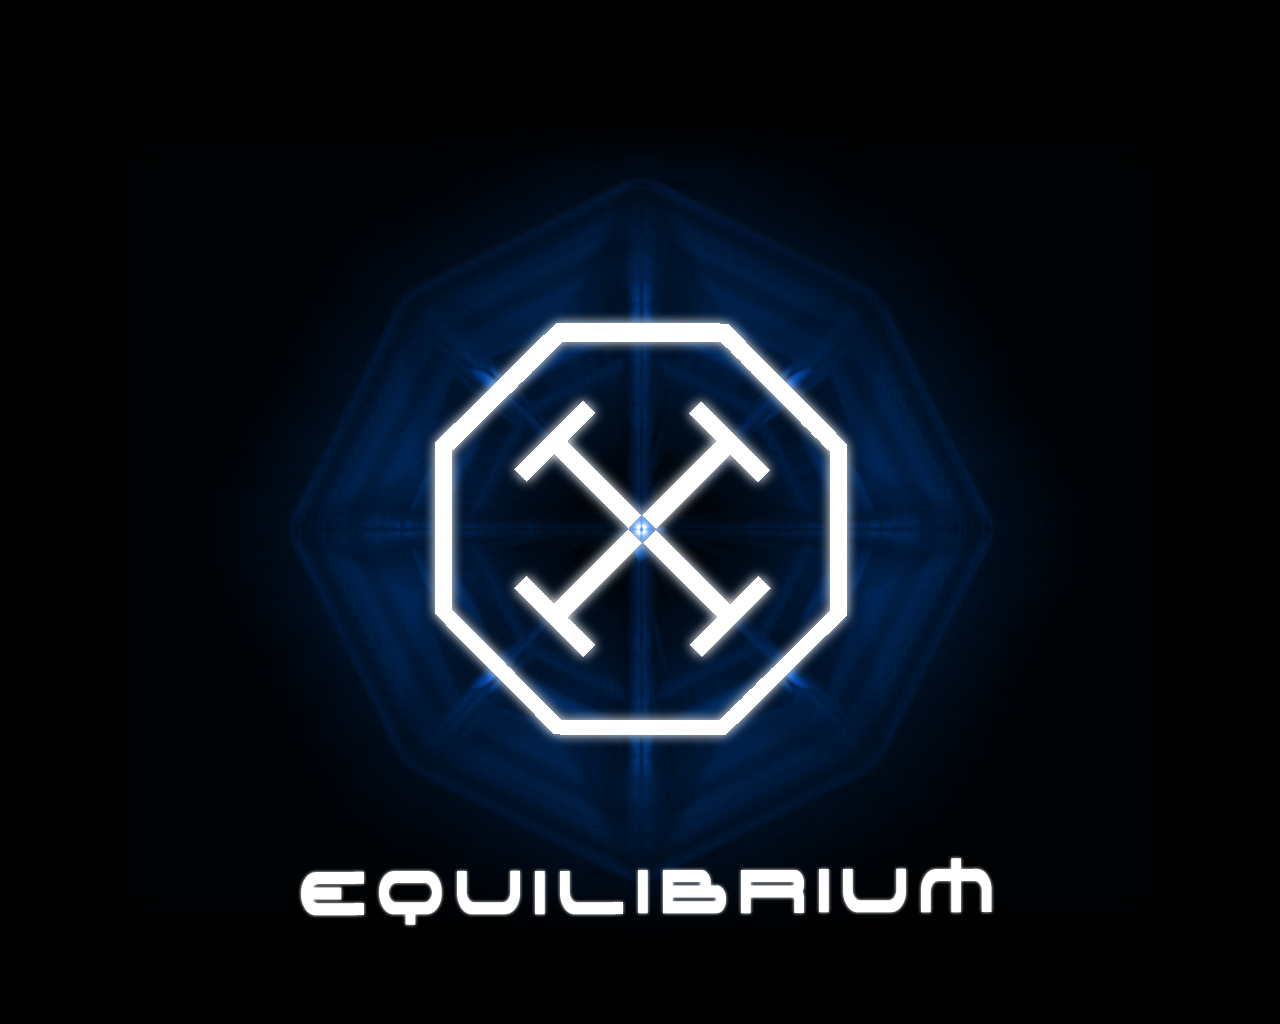 set19-equilibriumwallpaper11.jpg